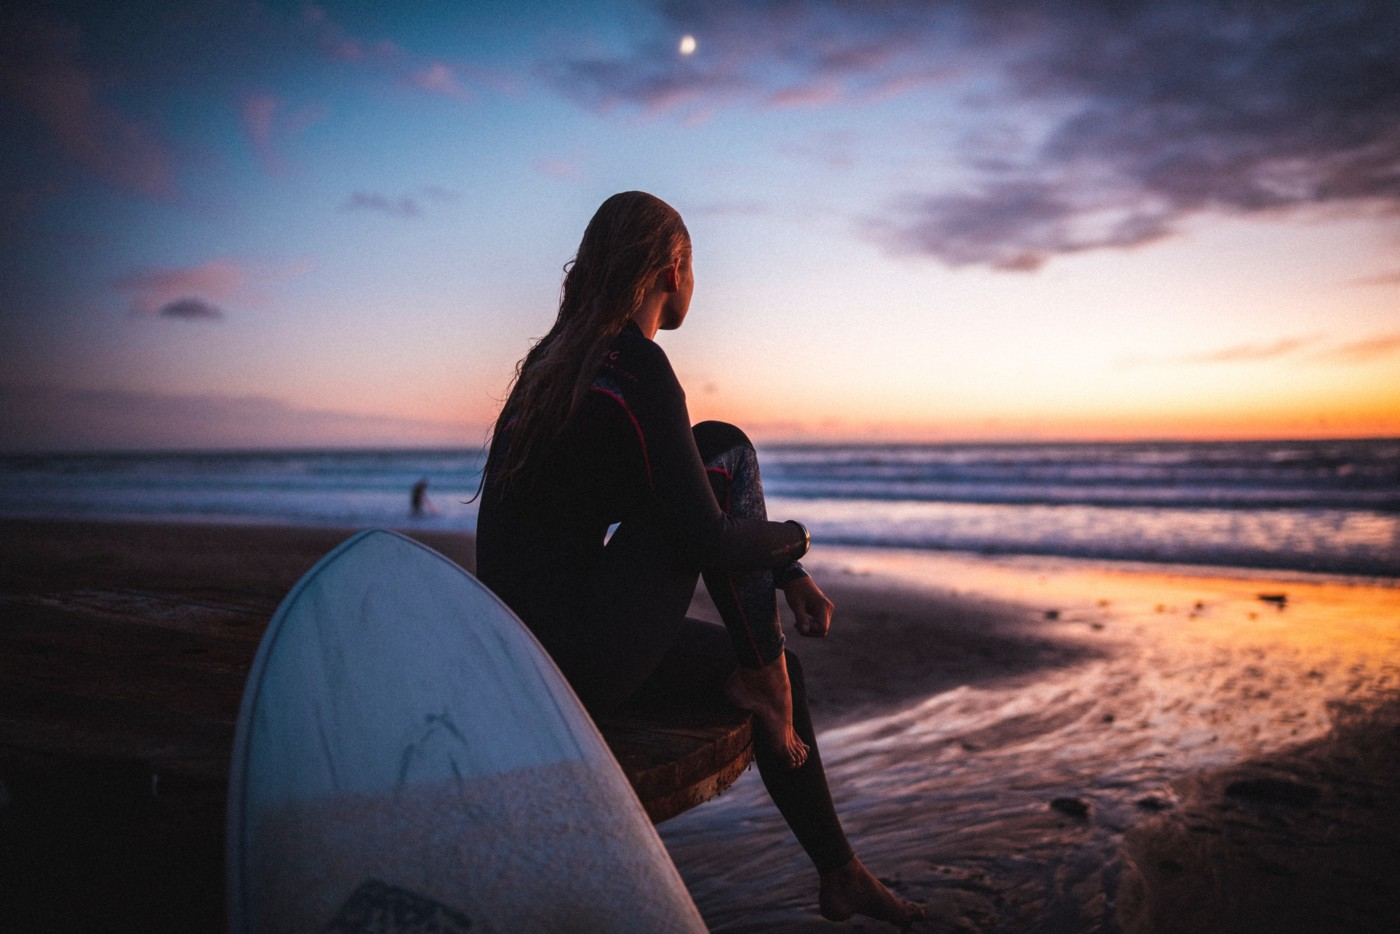 Woman in black jacket sitting on white surfboard on beach during sunset